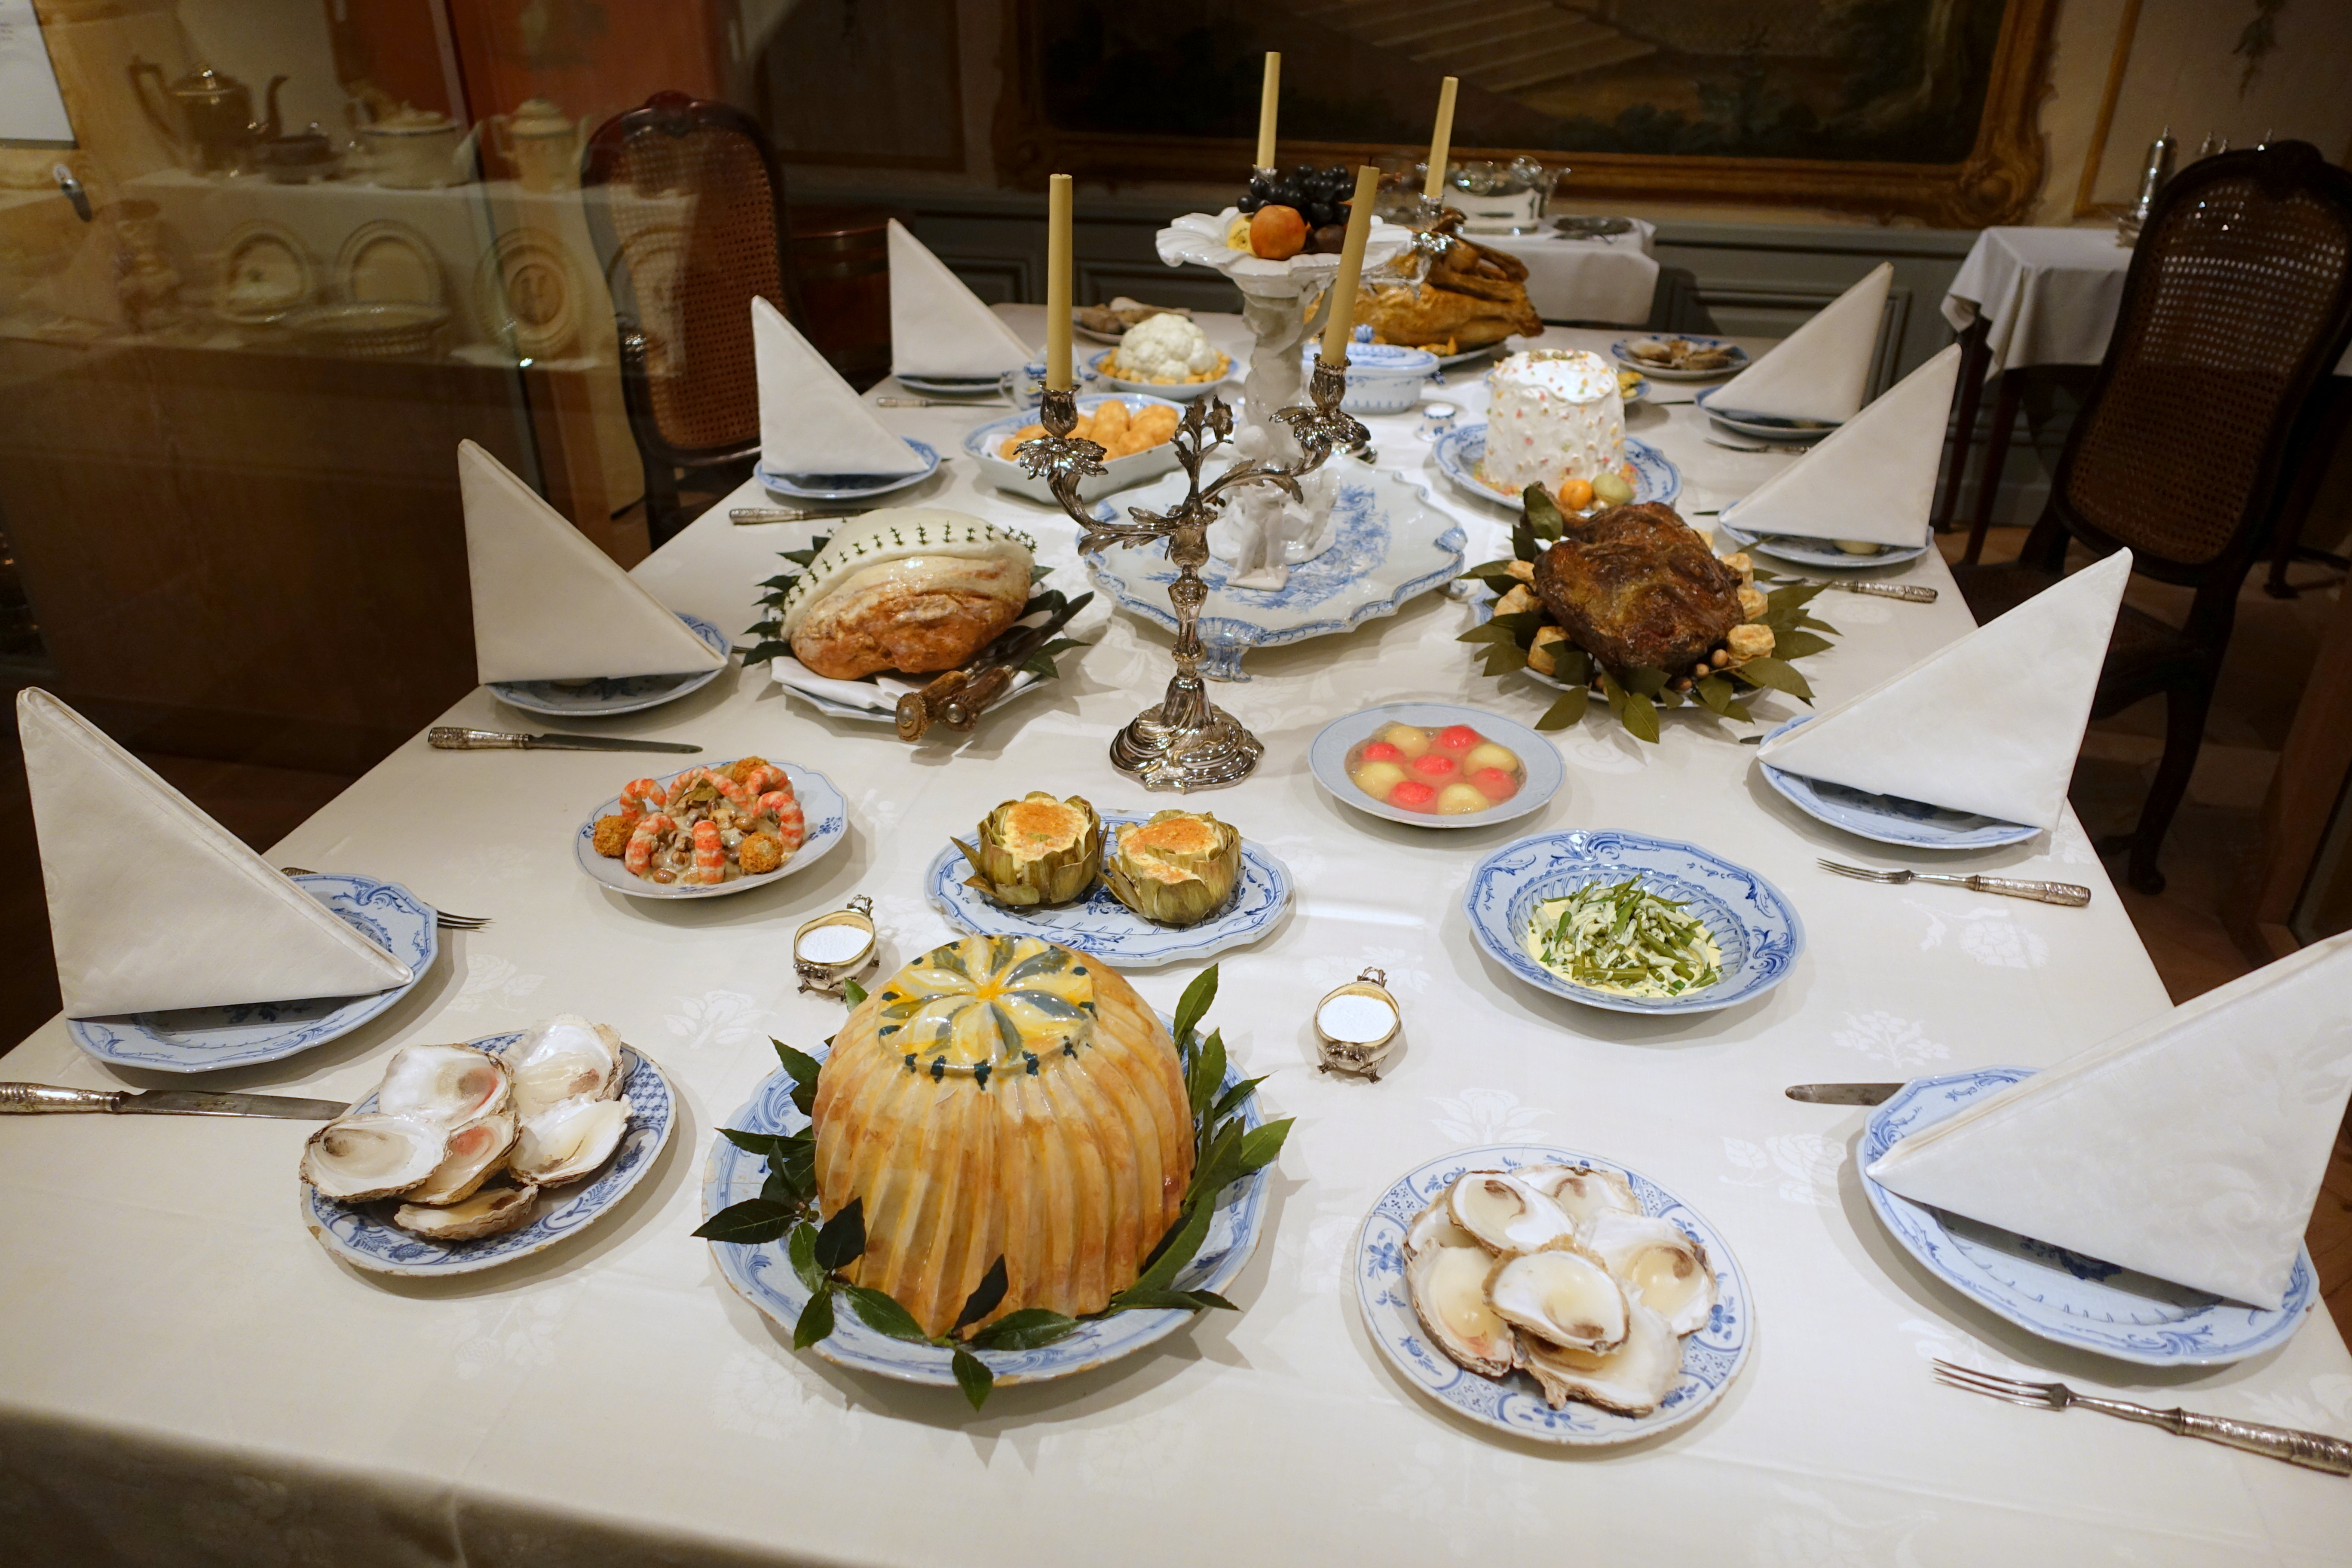 FileTable setting - Nordiska museet - Stockholm Sweden - DSC09798.JPG & File:Table setting - Nordiska museet - Stockholm Sweden - DSC09798 ...